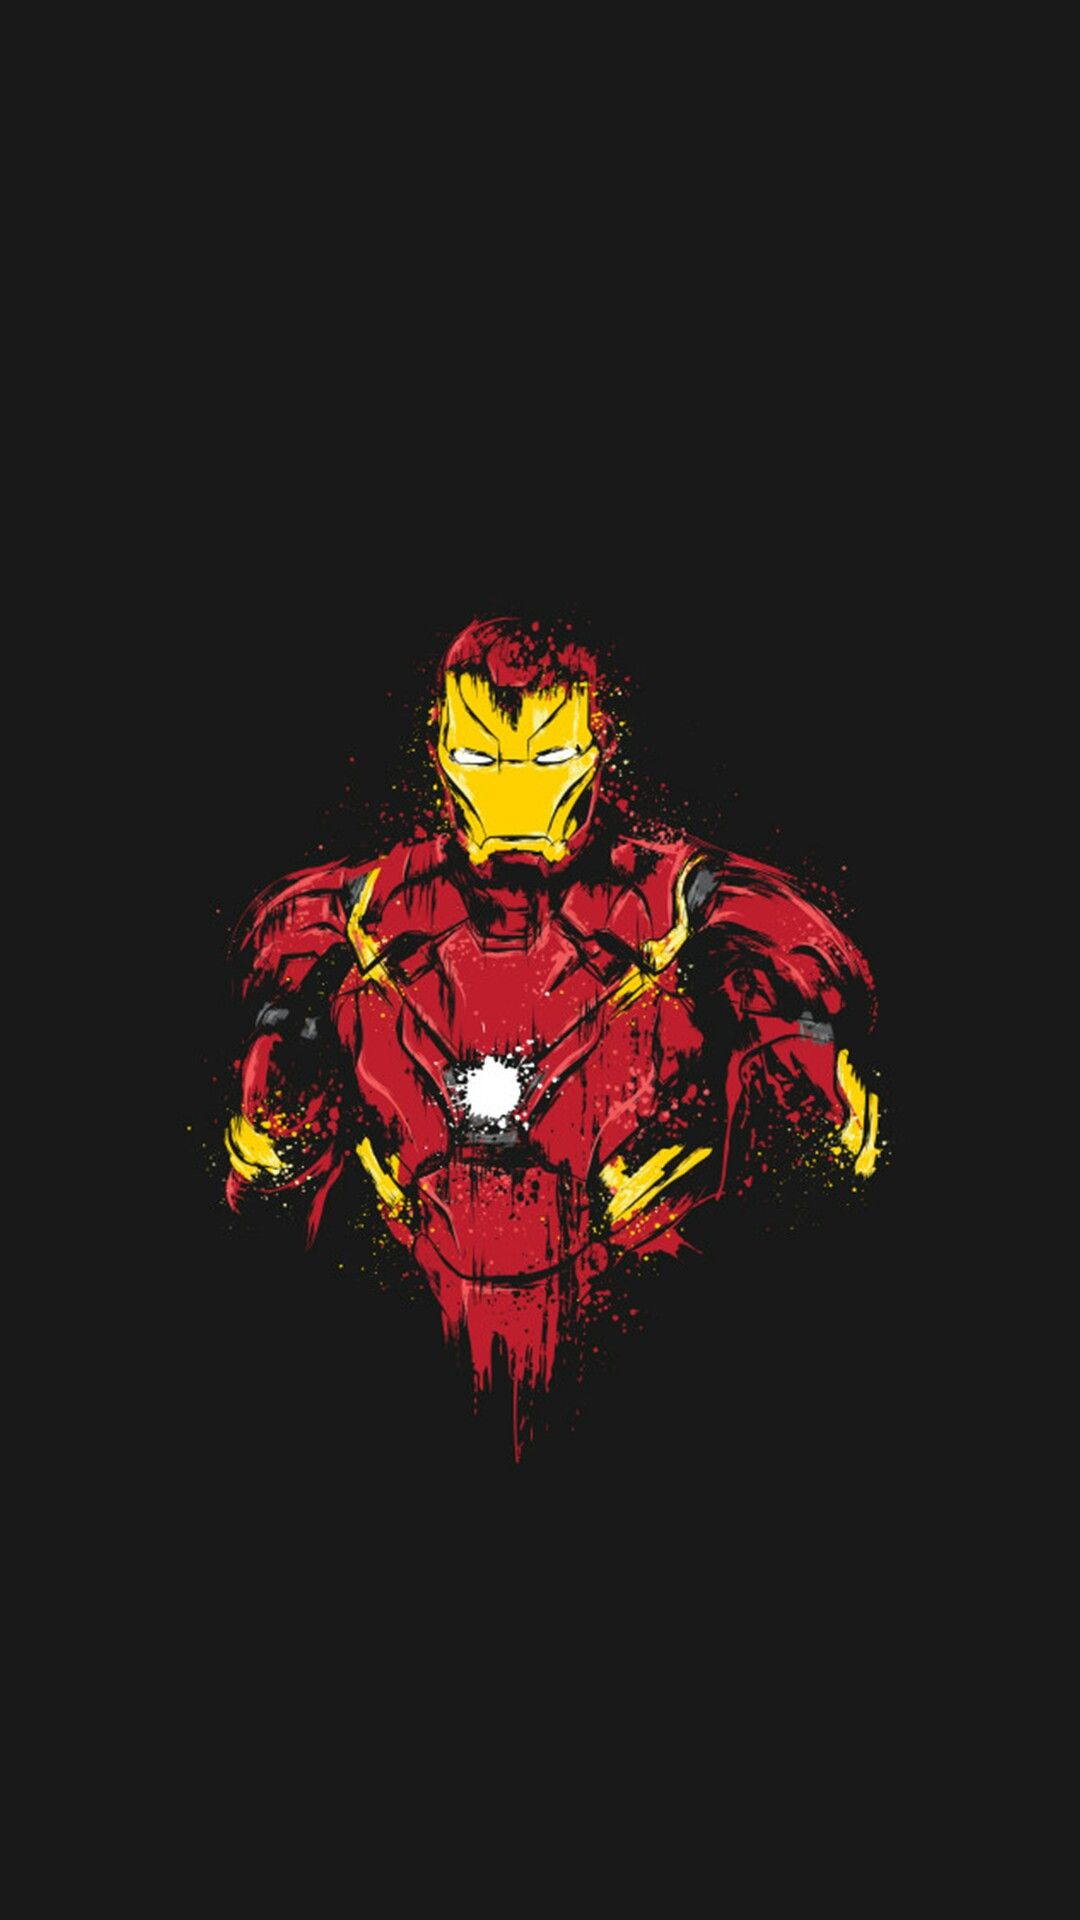 Iphone Marvel Wallpapers Hd From Uploaded By User Free Smartphone Wallpaper